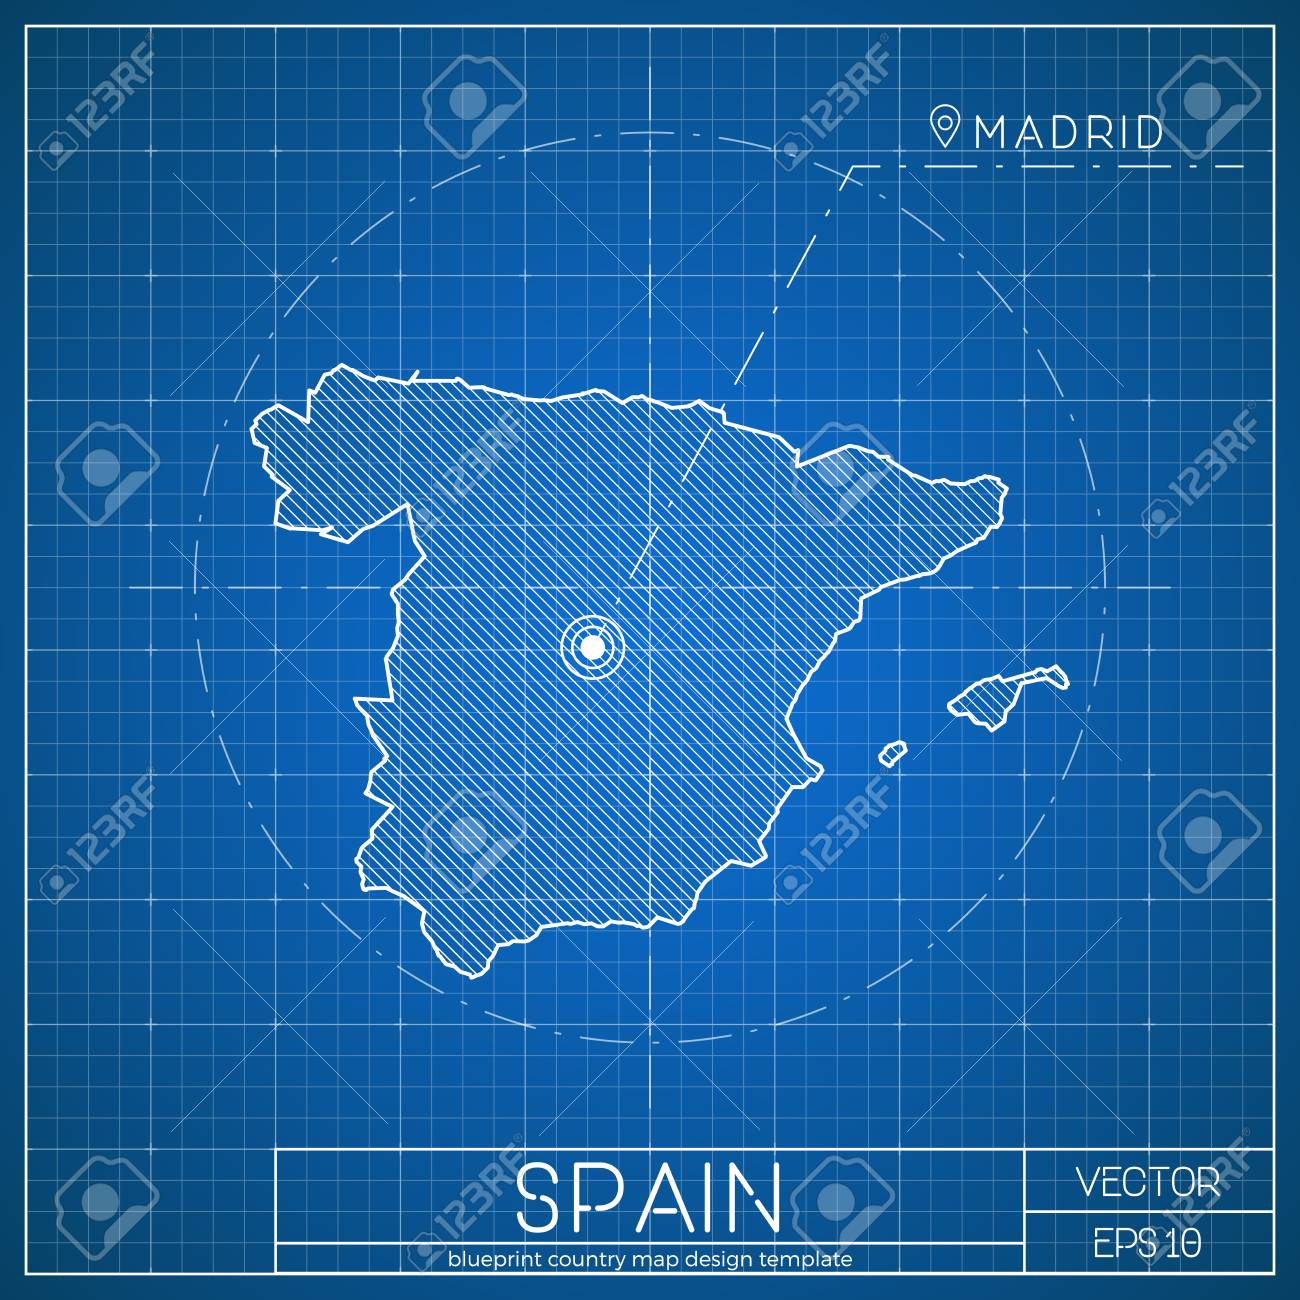 Spain blueprint map template with capital city madrid marked spain blueprint map template with capital city madrid marked on blueprint spanish map vector malvernweather Gallery